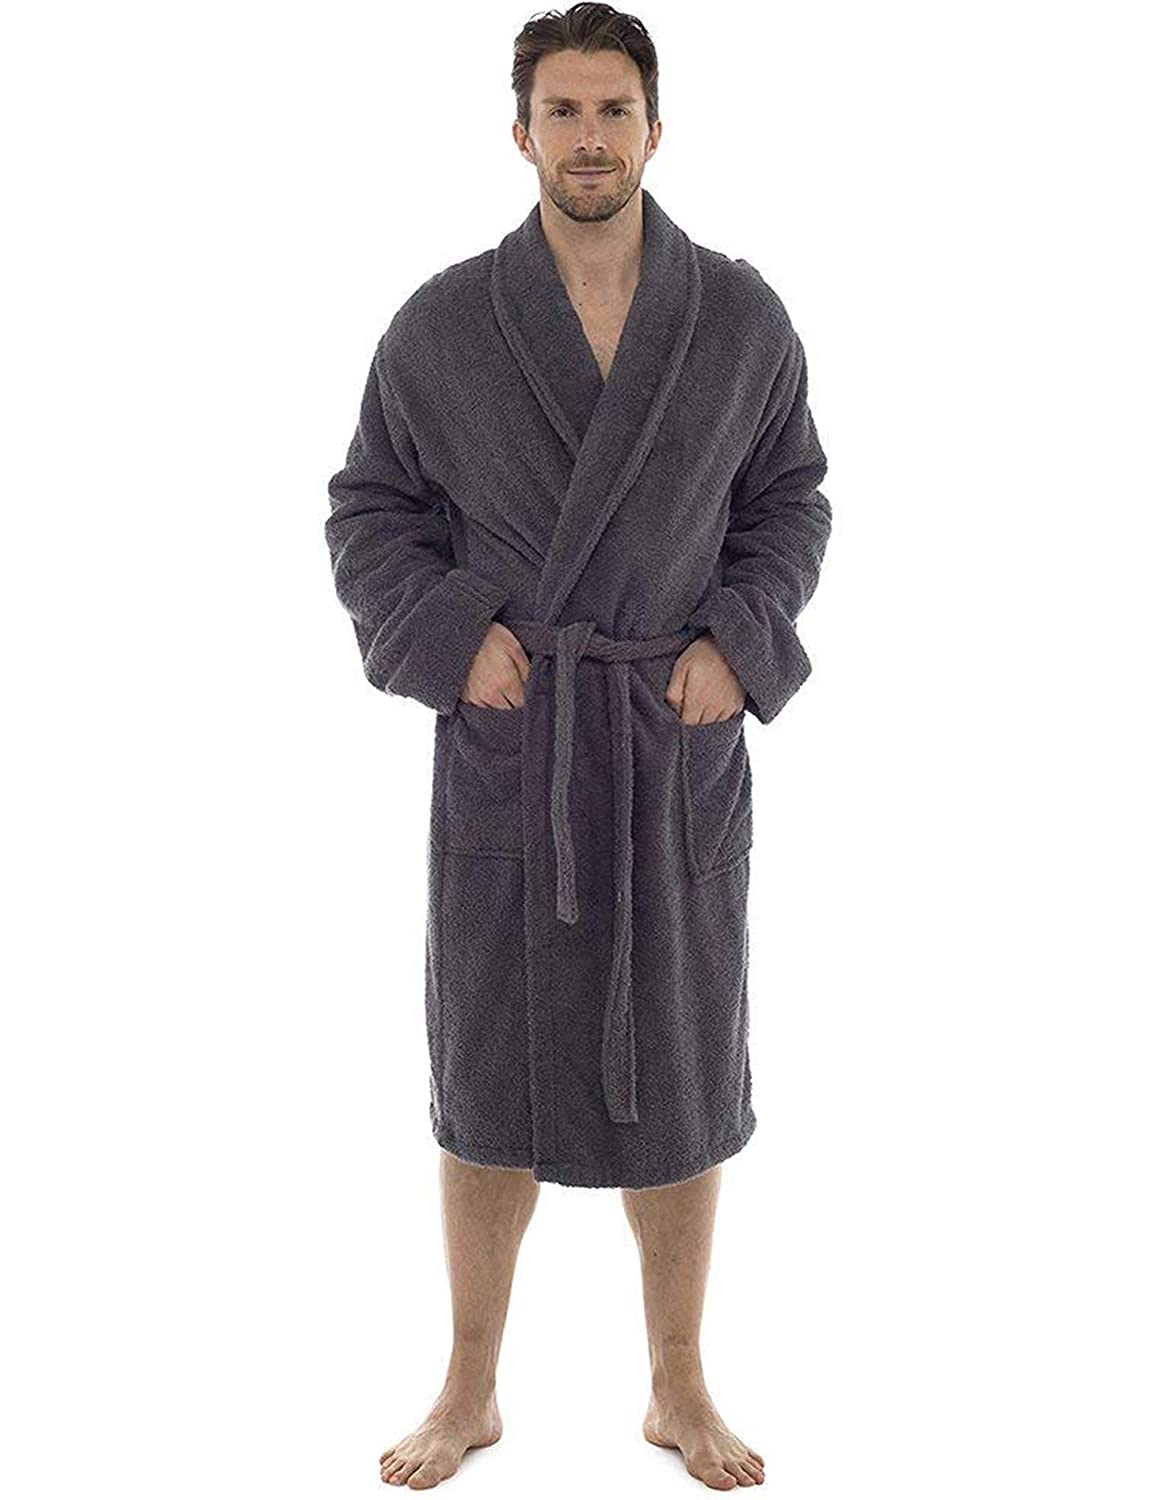 33466a992c Men Towelling Robe 100% Cotton Terry Towel Bathrobe Dressing Gown Bath  Perfect for Gym Shower Spa Hotel Robe Holiday  Amazon.co.uk  Clothing